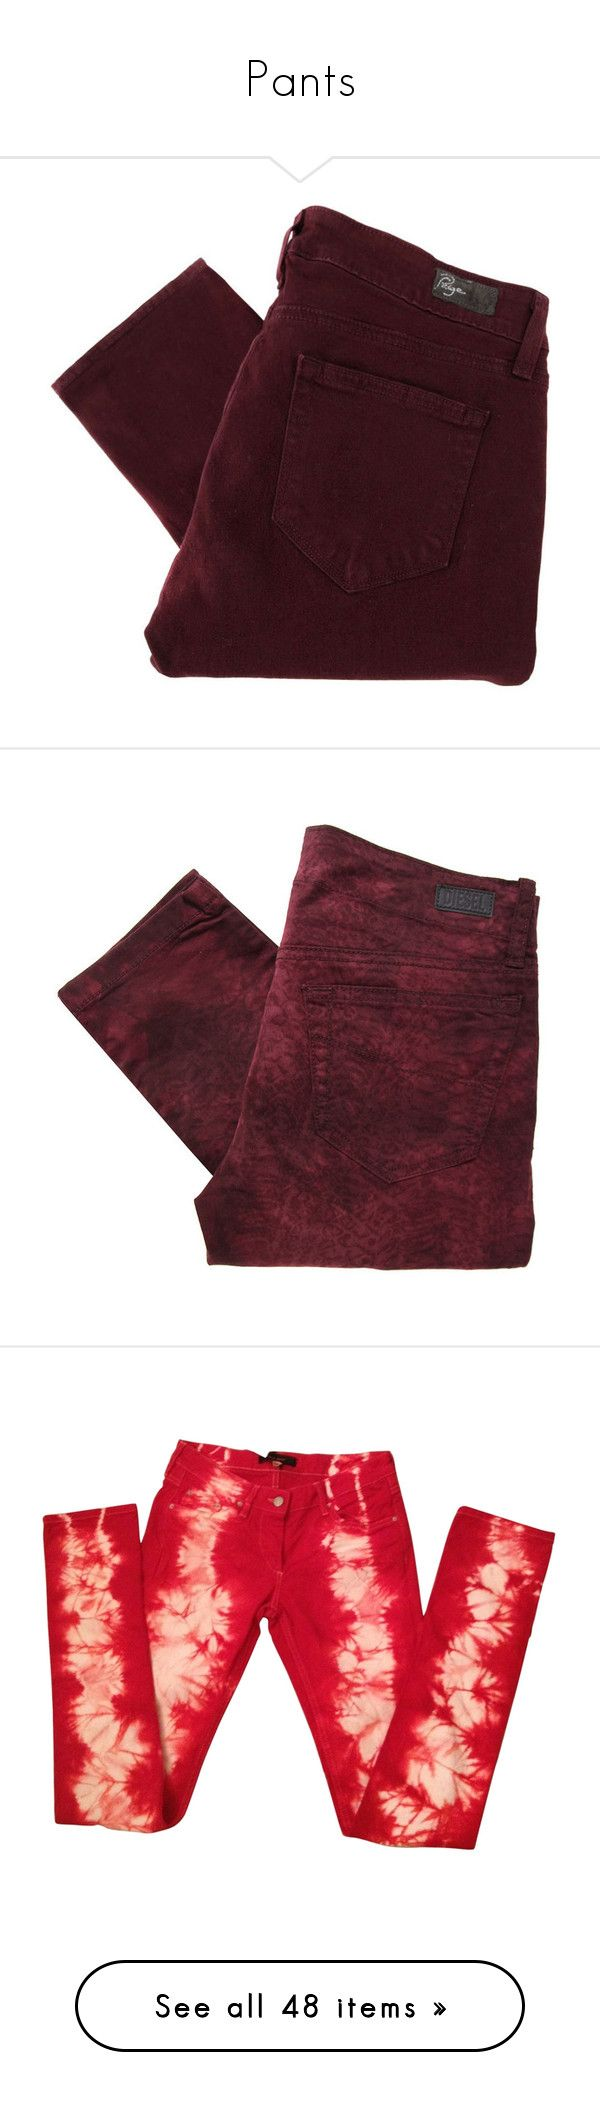 """""""Pants"""" by punkiero ❤ liked on Polyvore featuring pants, bottoms, jeans, trousers, women, slim fitted pants, ankle length pants, brown pants, 5 pocket pants and floral print pants"""